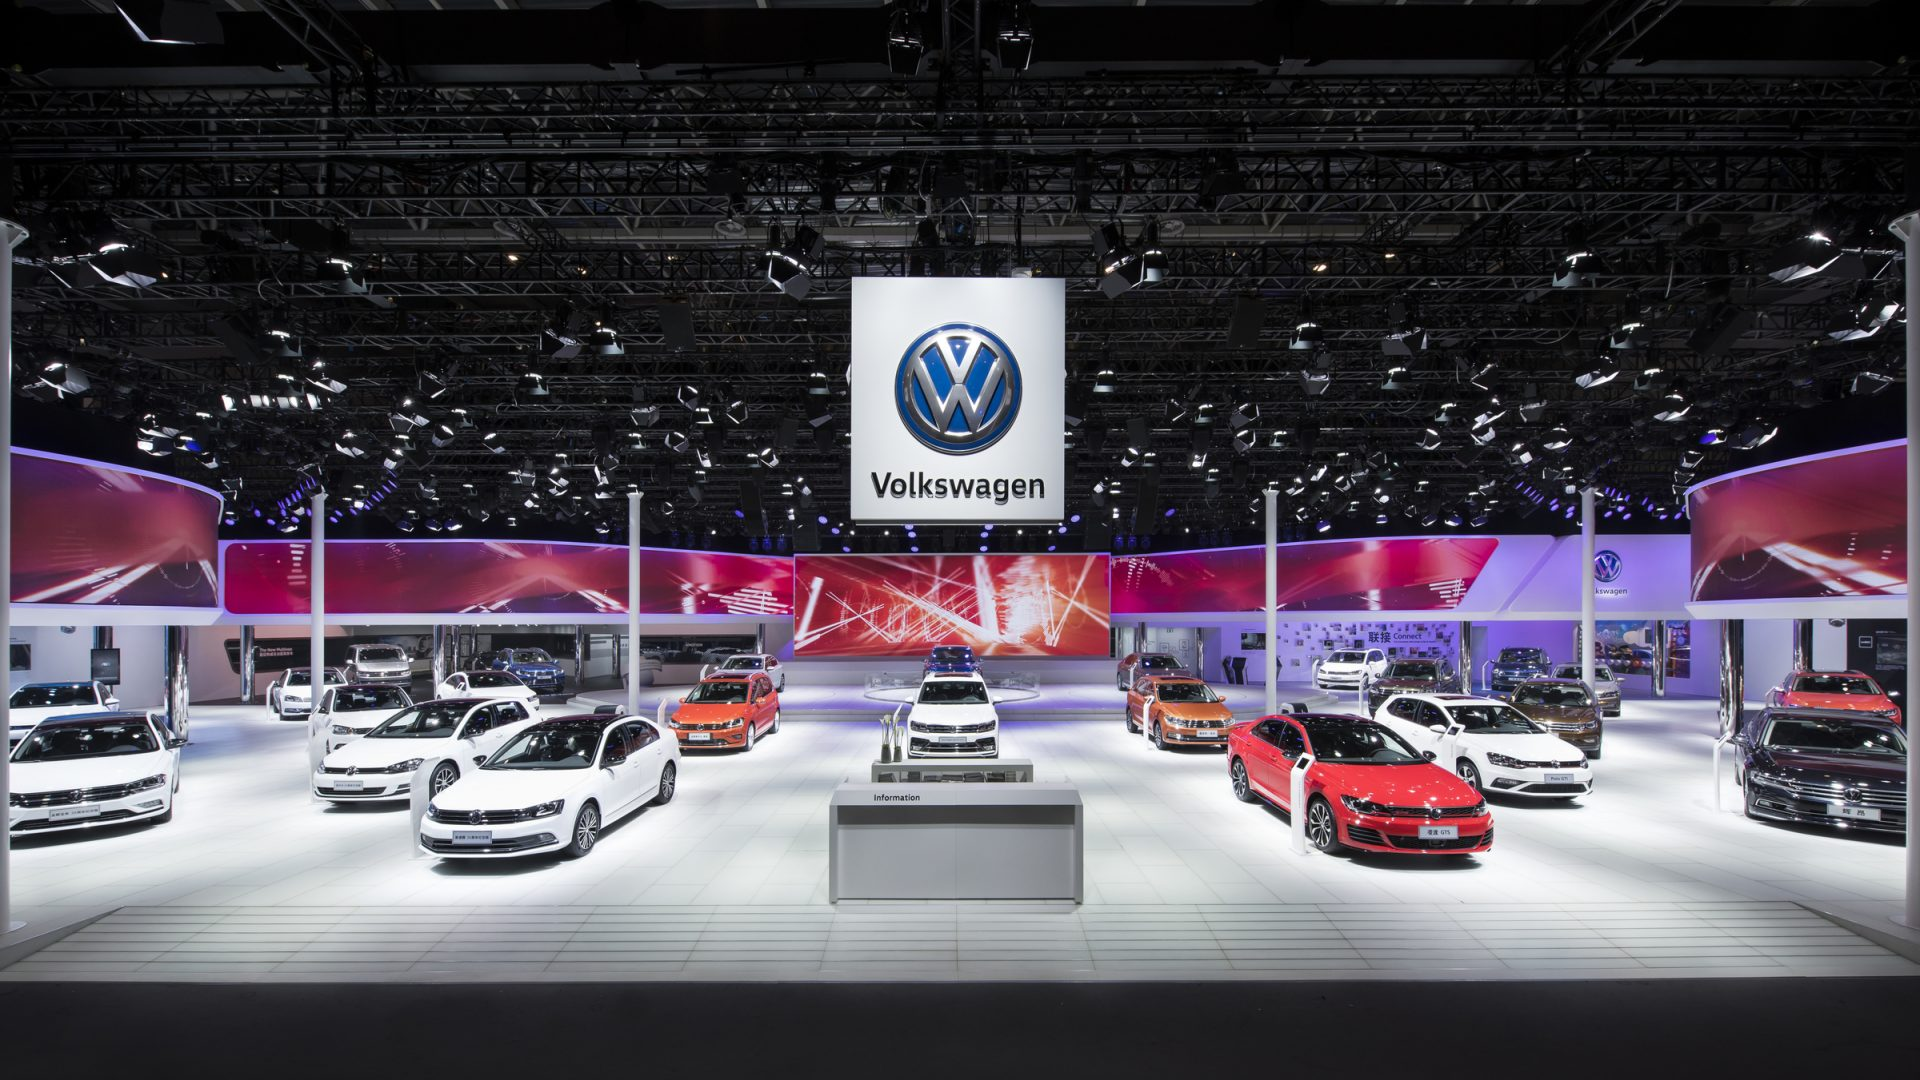 VW exhibition in China